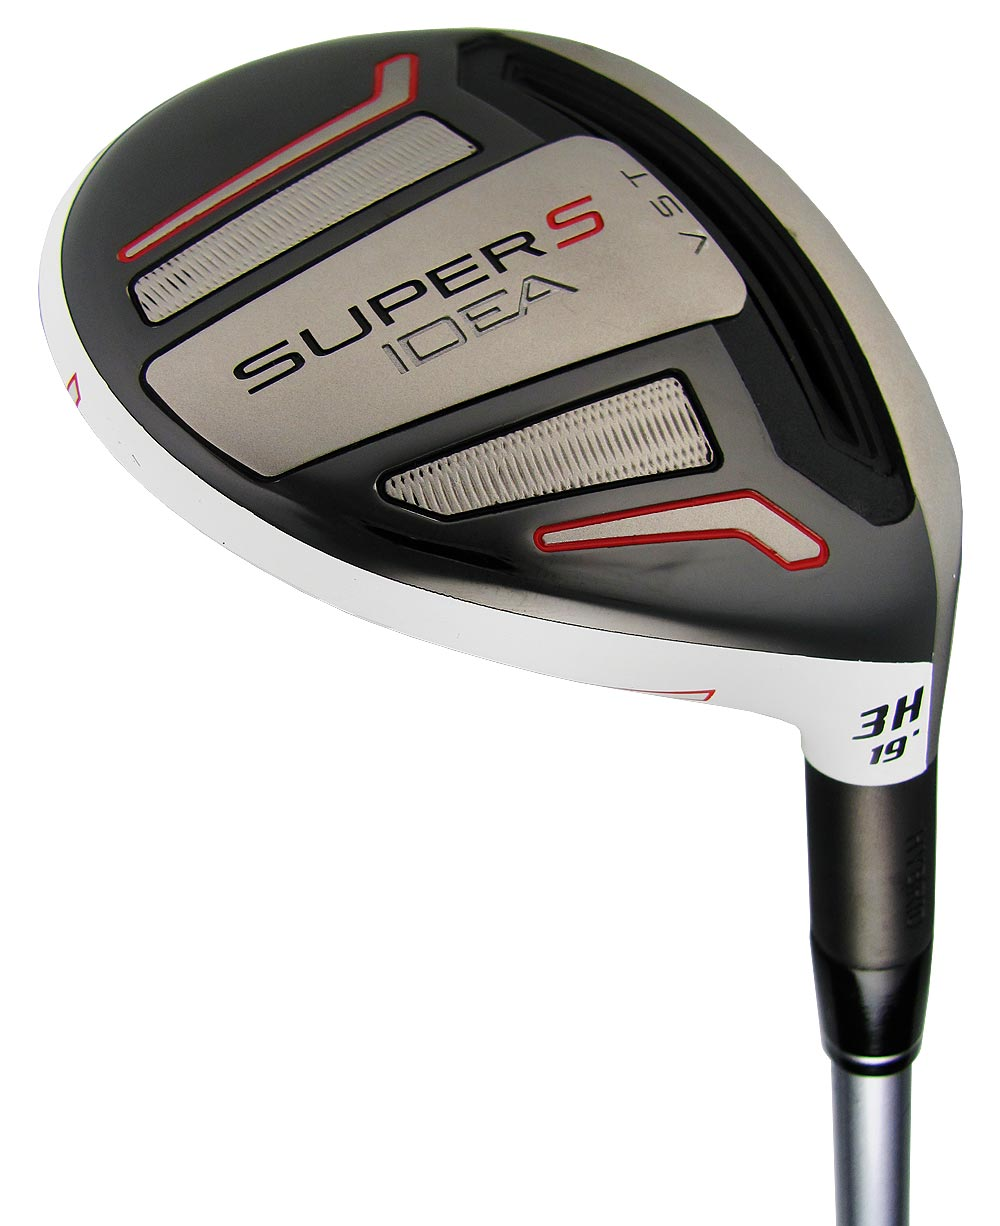 10 best hybrid golf clubs for 2017 page 4 of 4 sport stardom all things sports. Black Bedroom Furniture Sets. Home Design Ideas